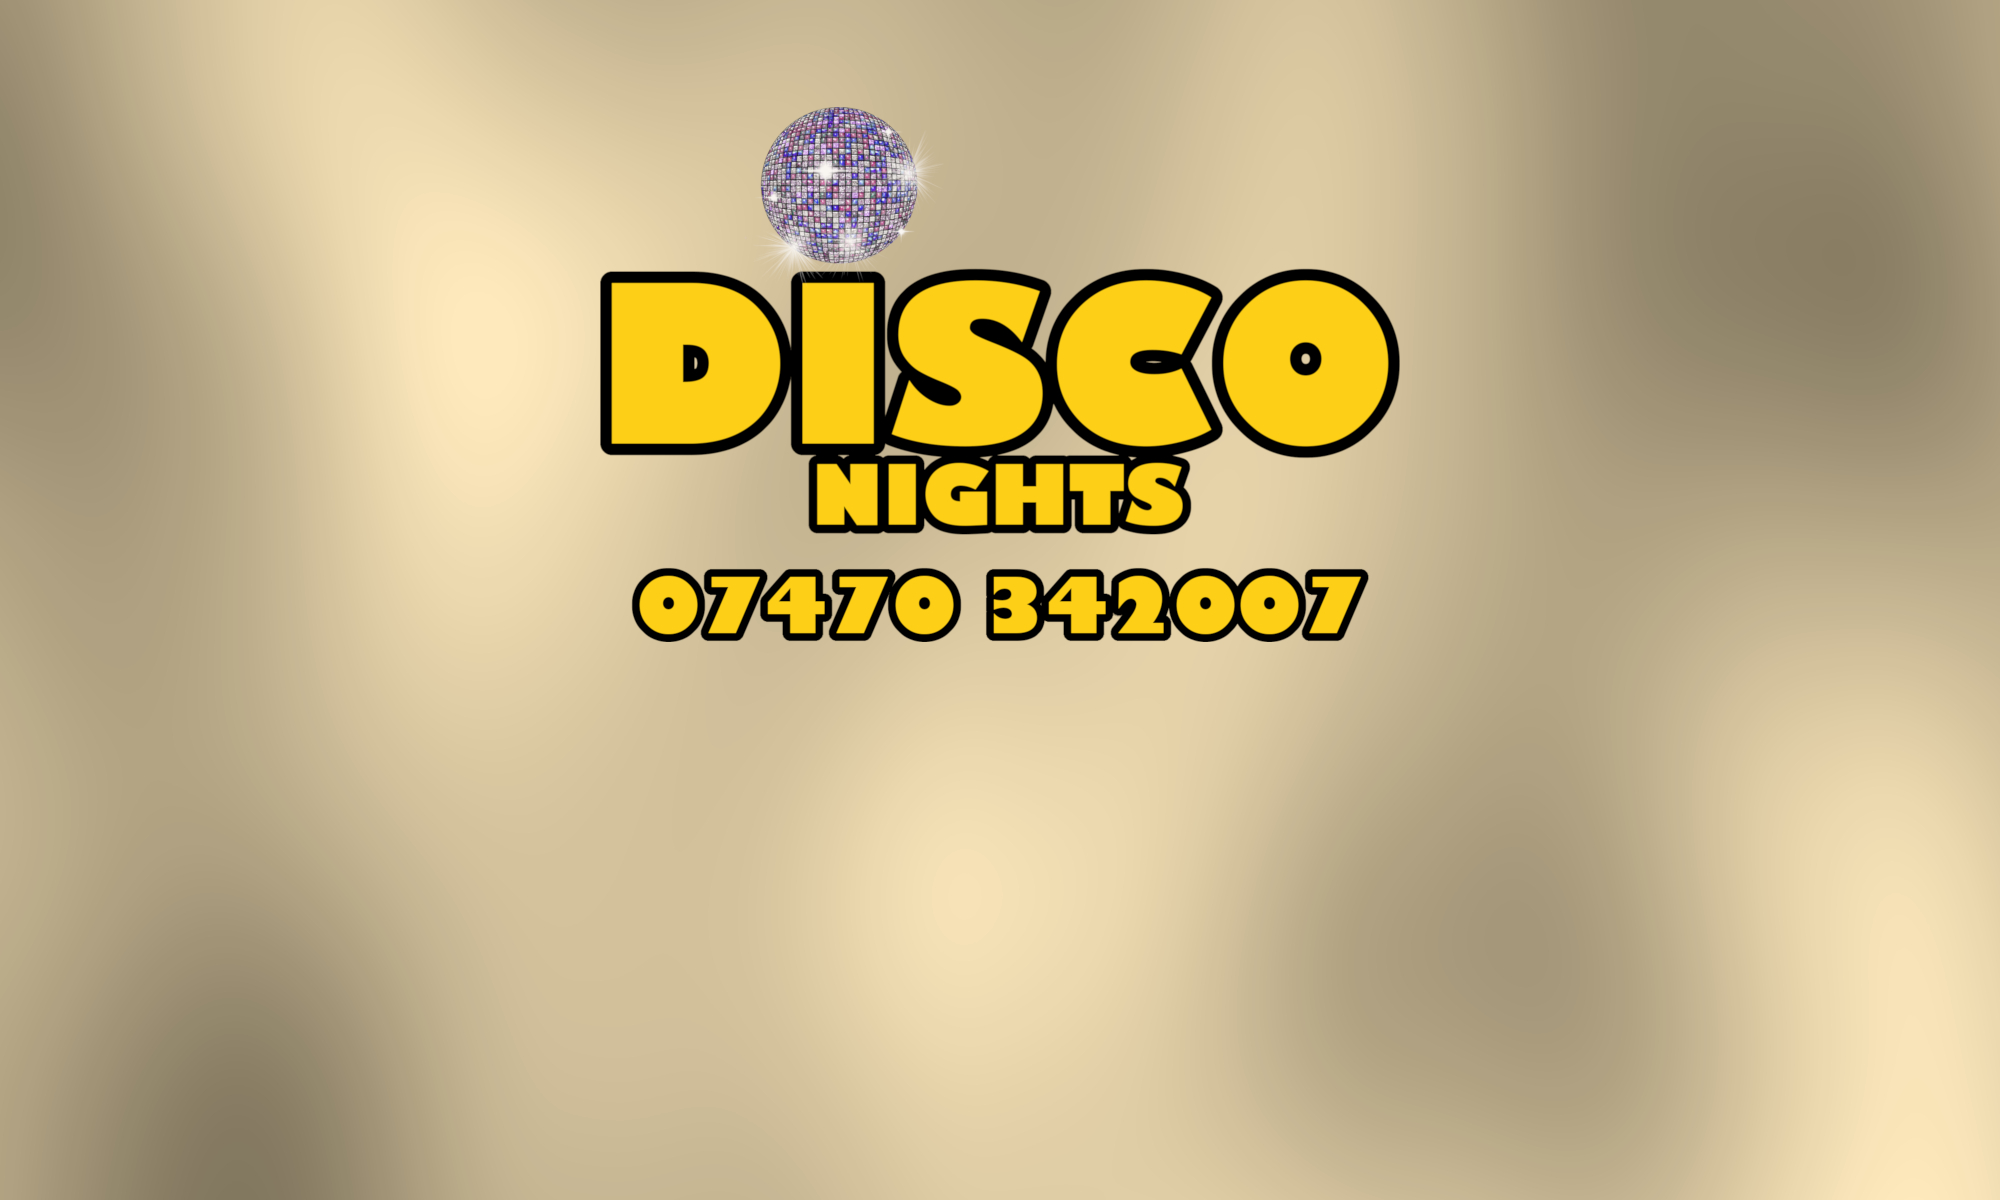 disco-nights.co.uk